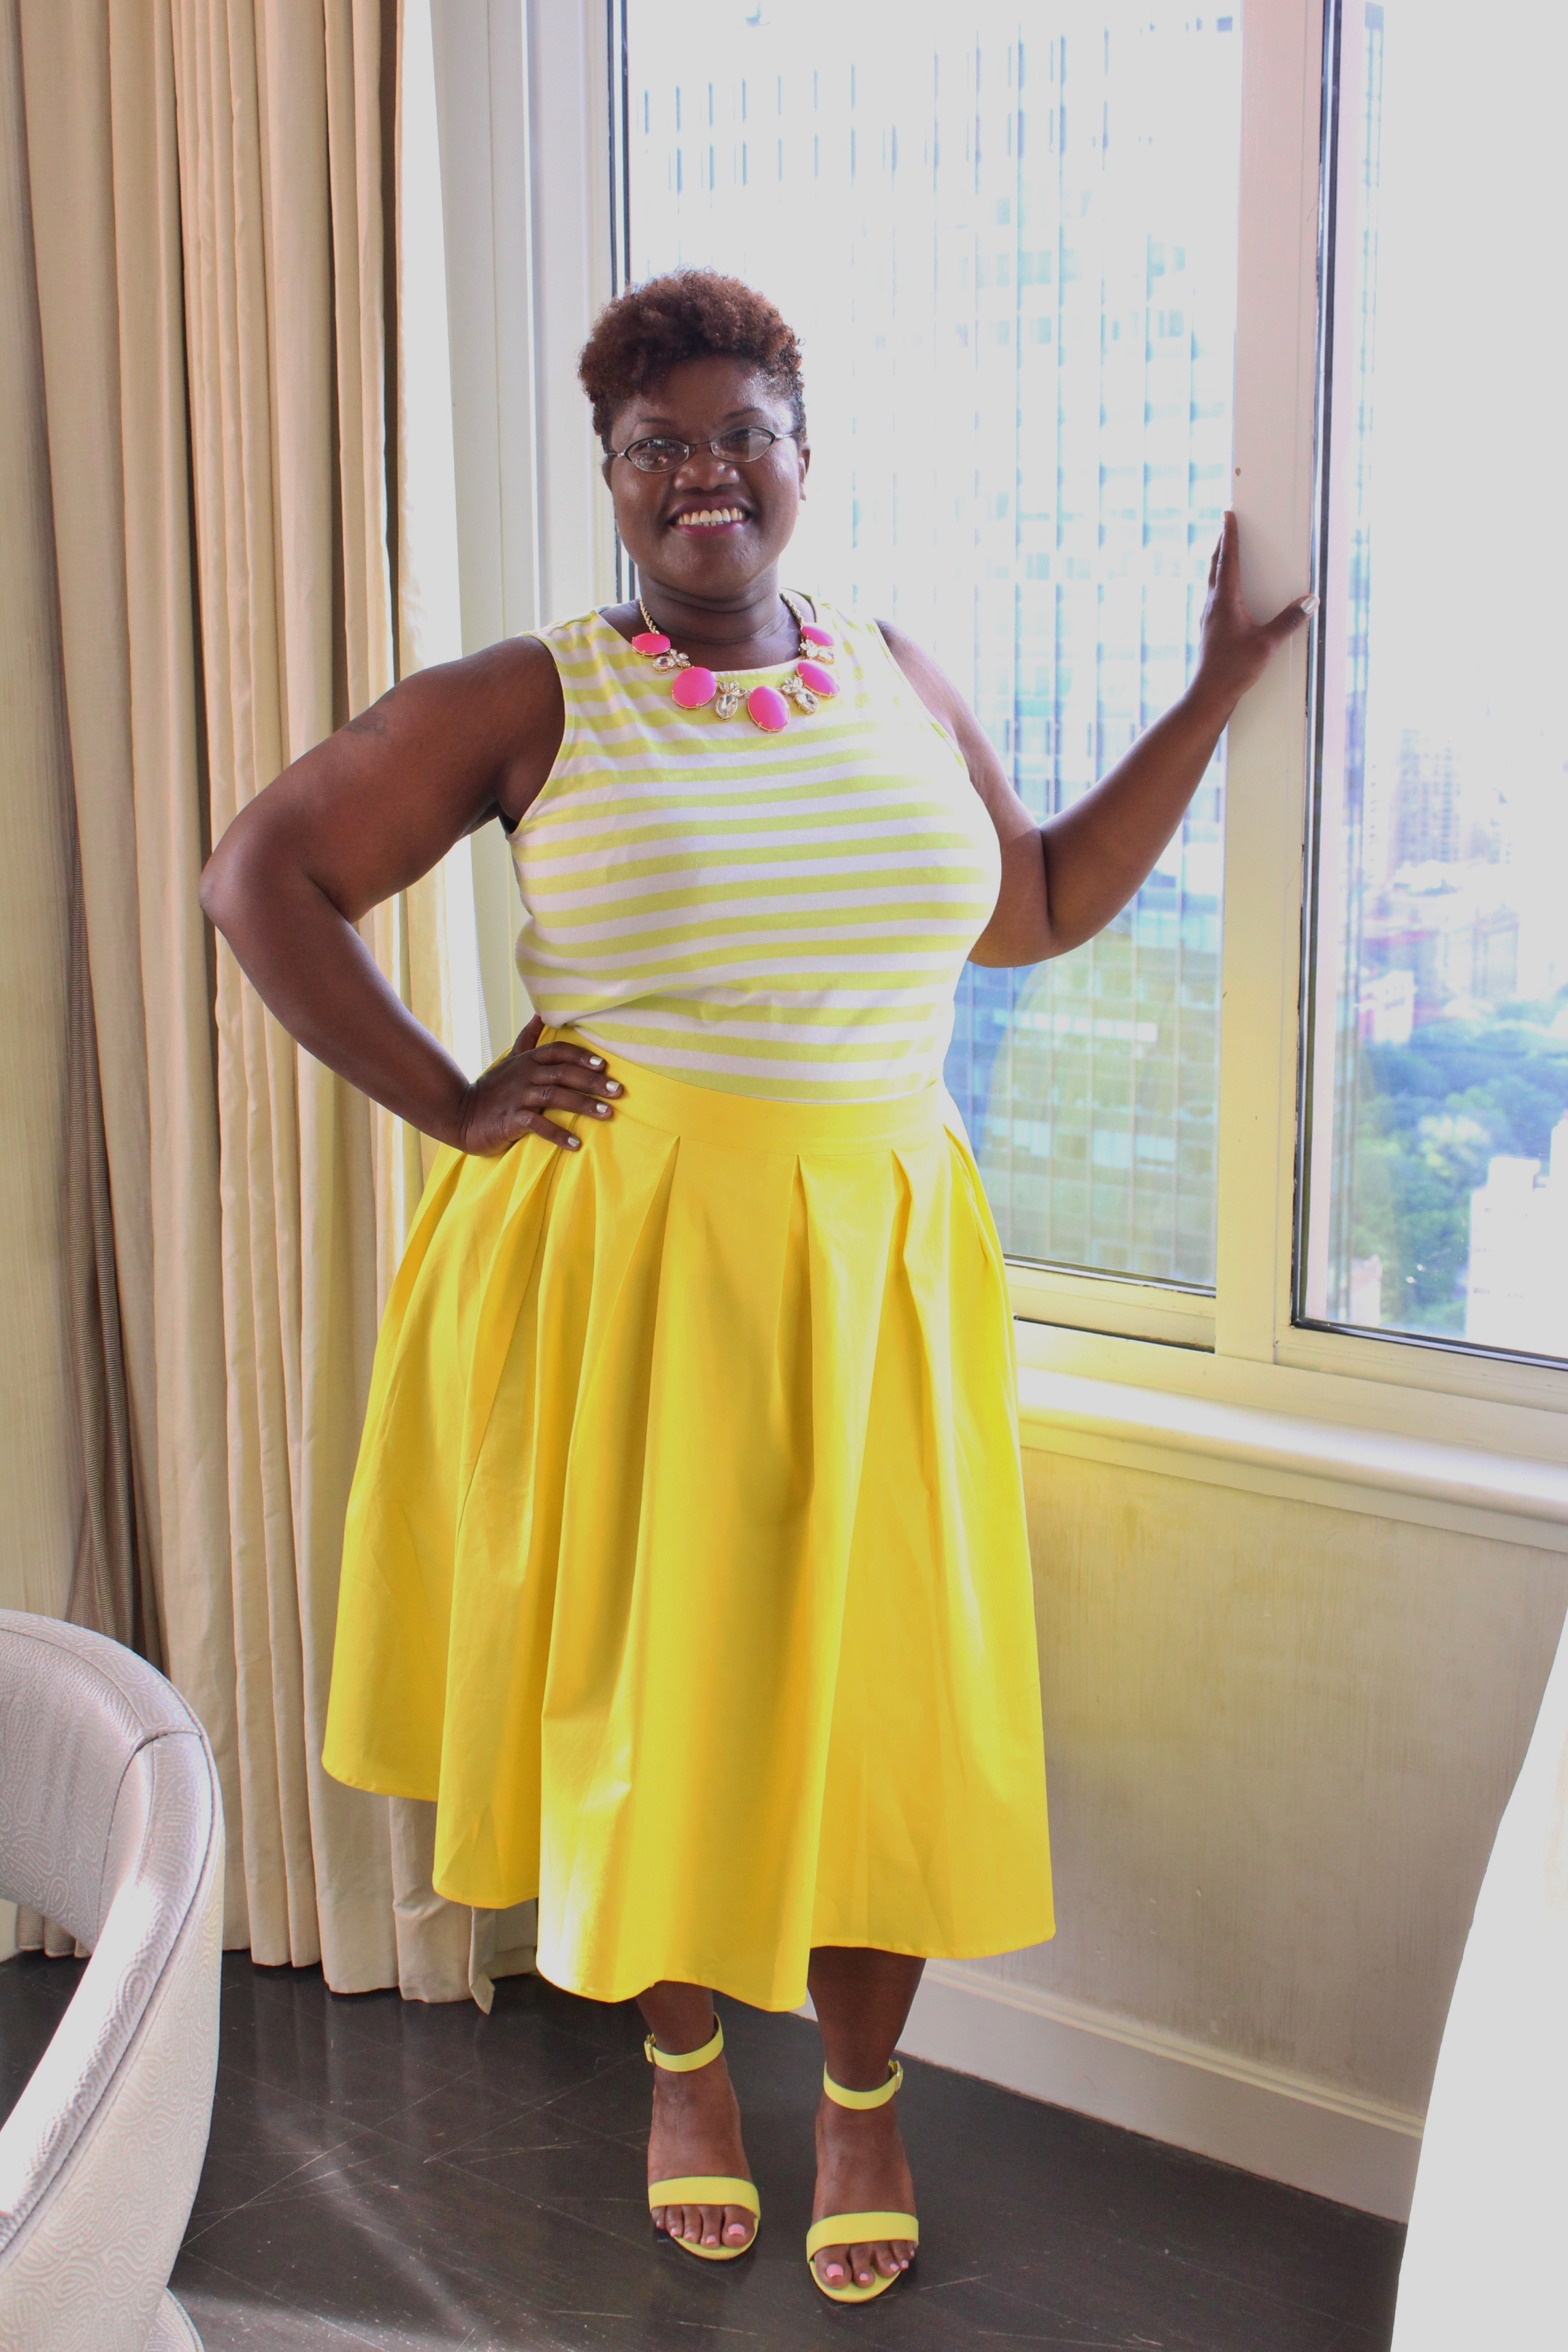 curvy women, eloquii, midi skirts, plus size skirts, plus size fashion, color blocking, ann taylor loft, old navy sandals, ankle strap sandals, curvy girls, full figure fashion week 2014, statement necklaces, curvy, curvy blogs, curvy bloggers, plus size blogs, plus size bloggers